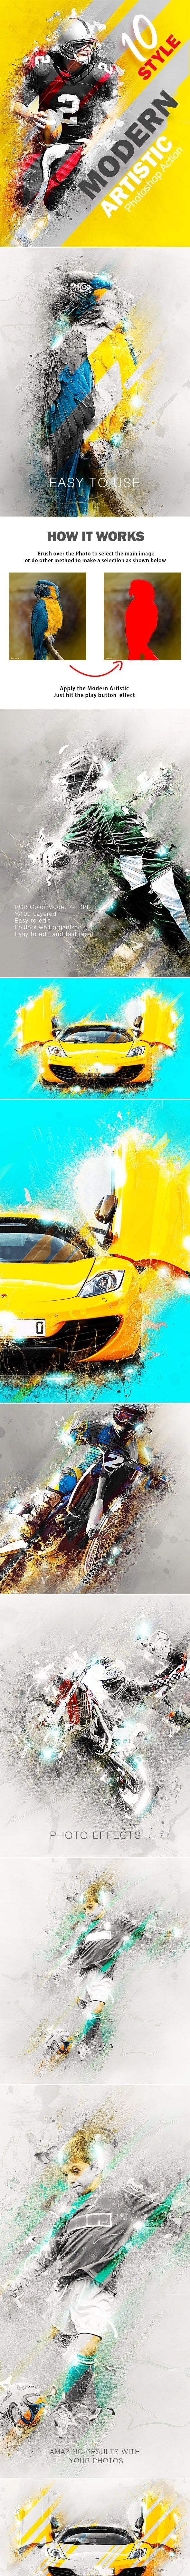 Modern Artistic Photoshop Action - Photo Effects Actions